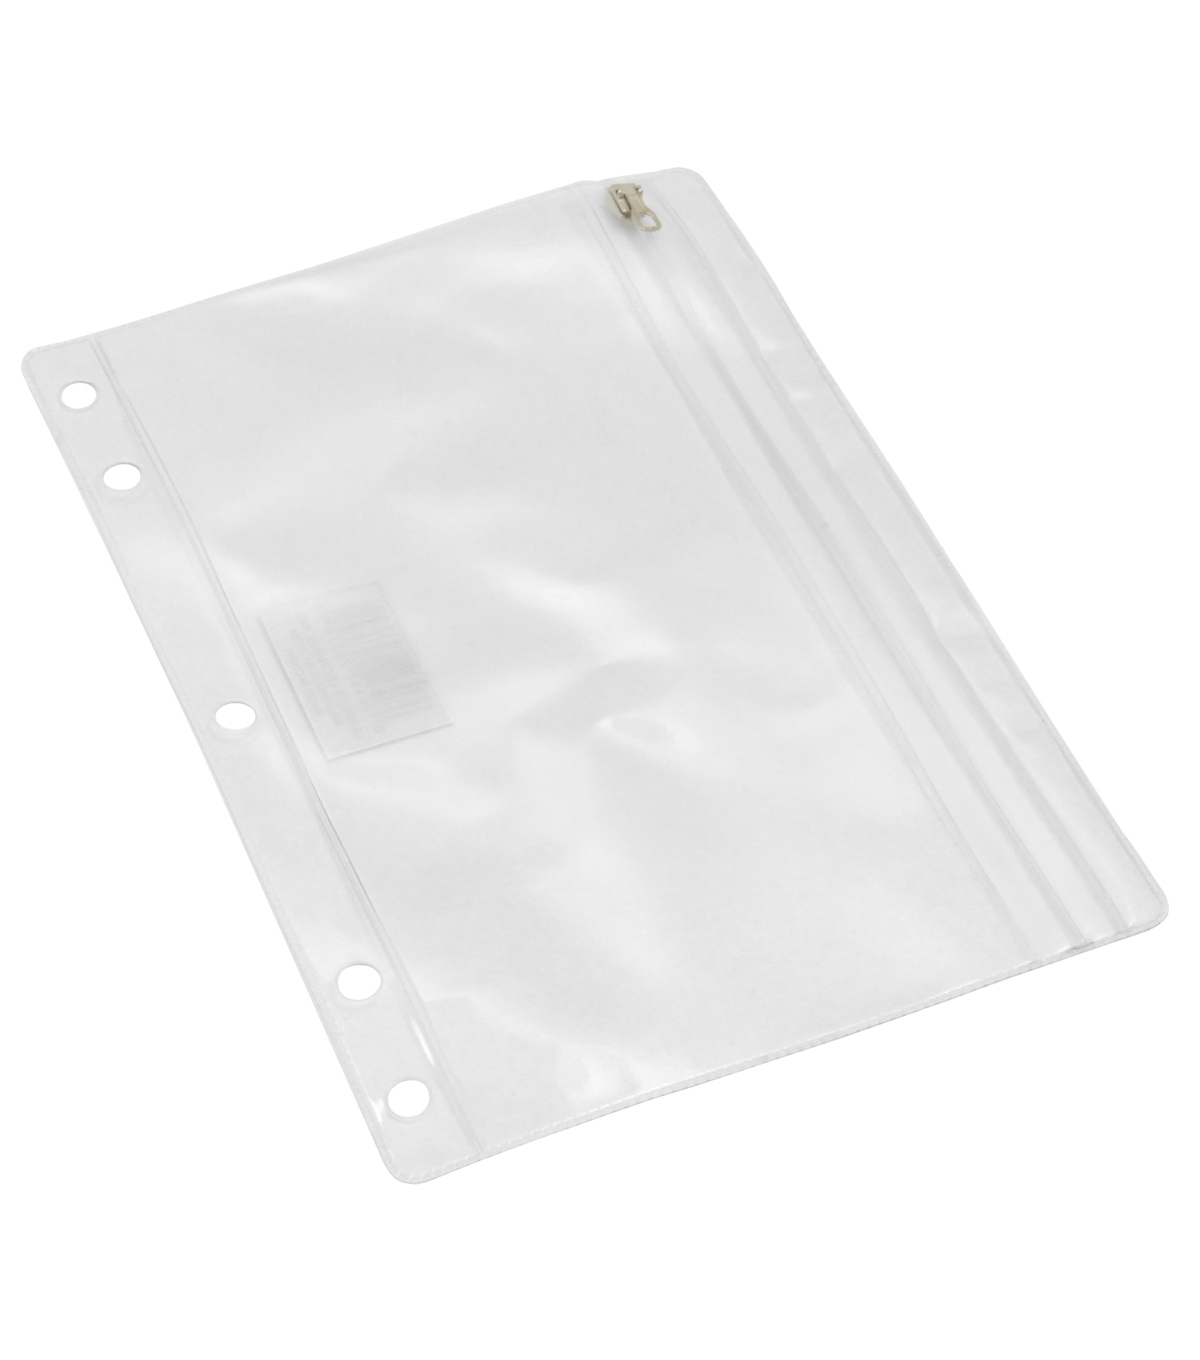 Charles Leonard Clear Vinyl Pencil Pouch with Zip Closure, Pack of 24